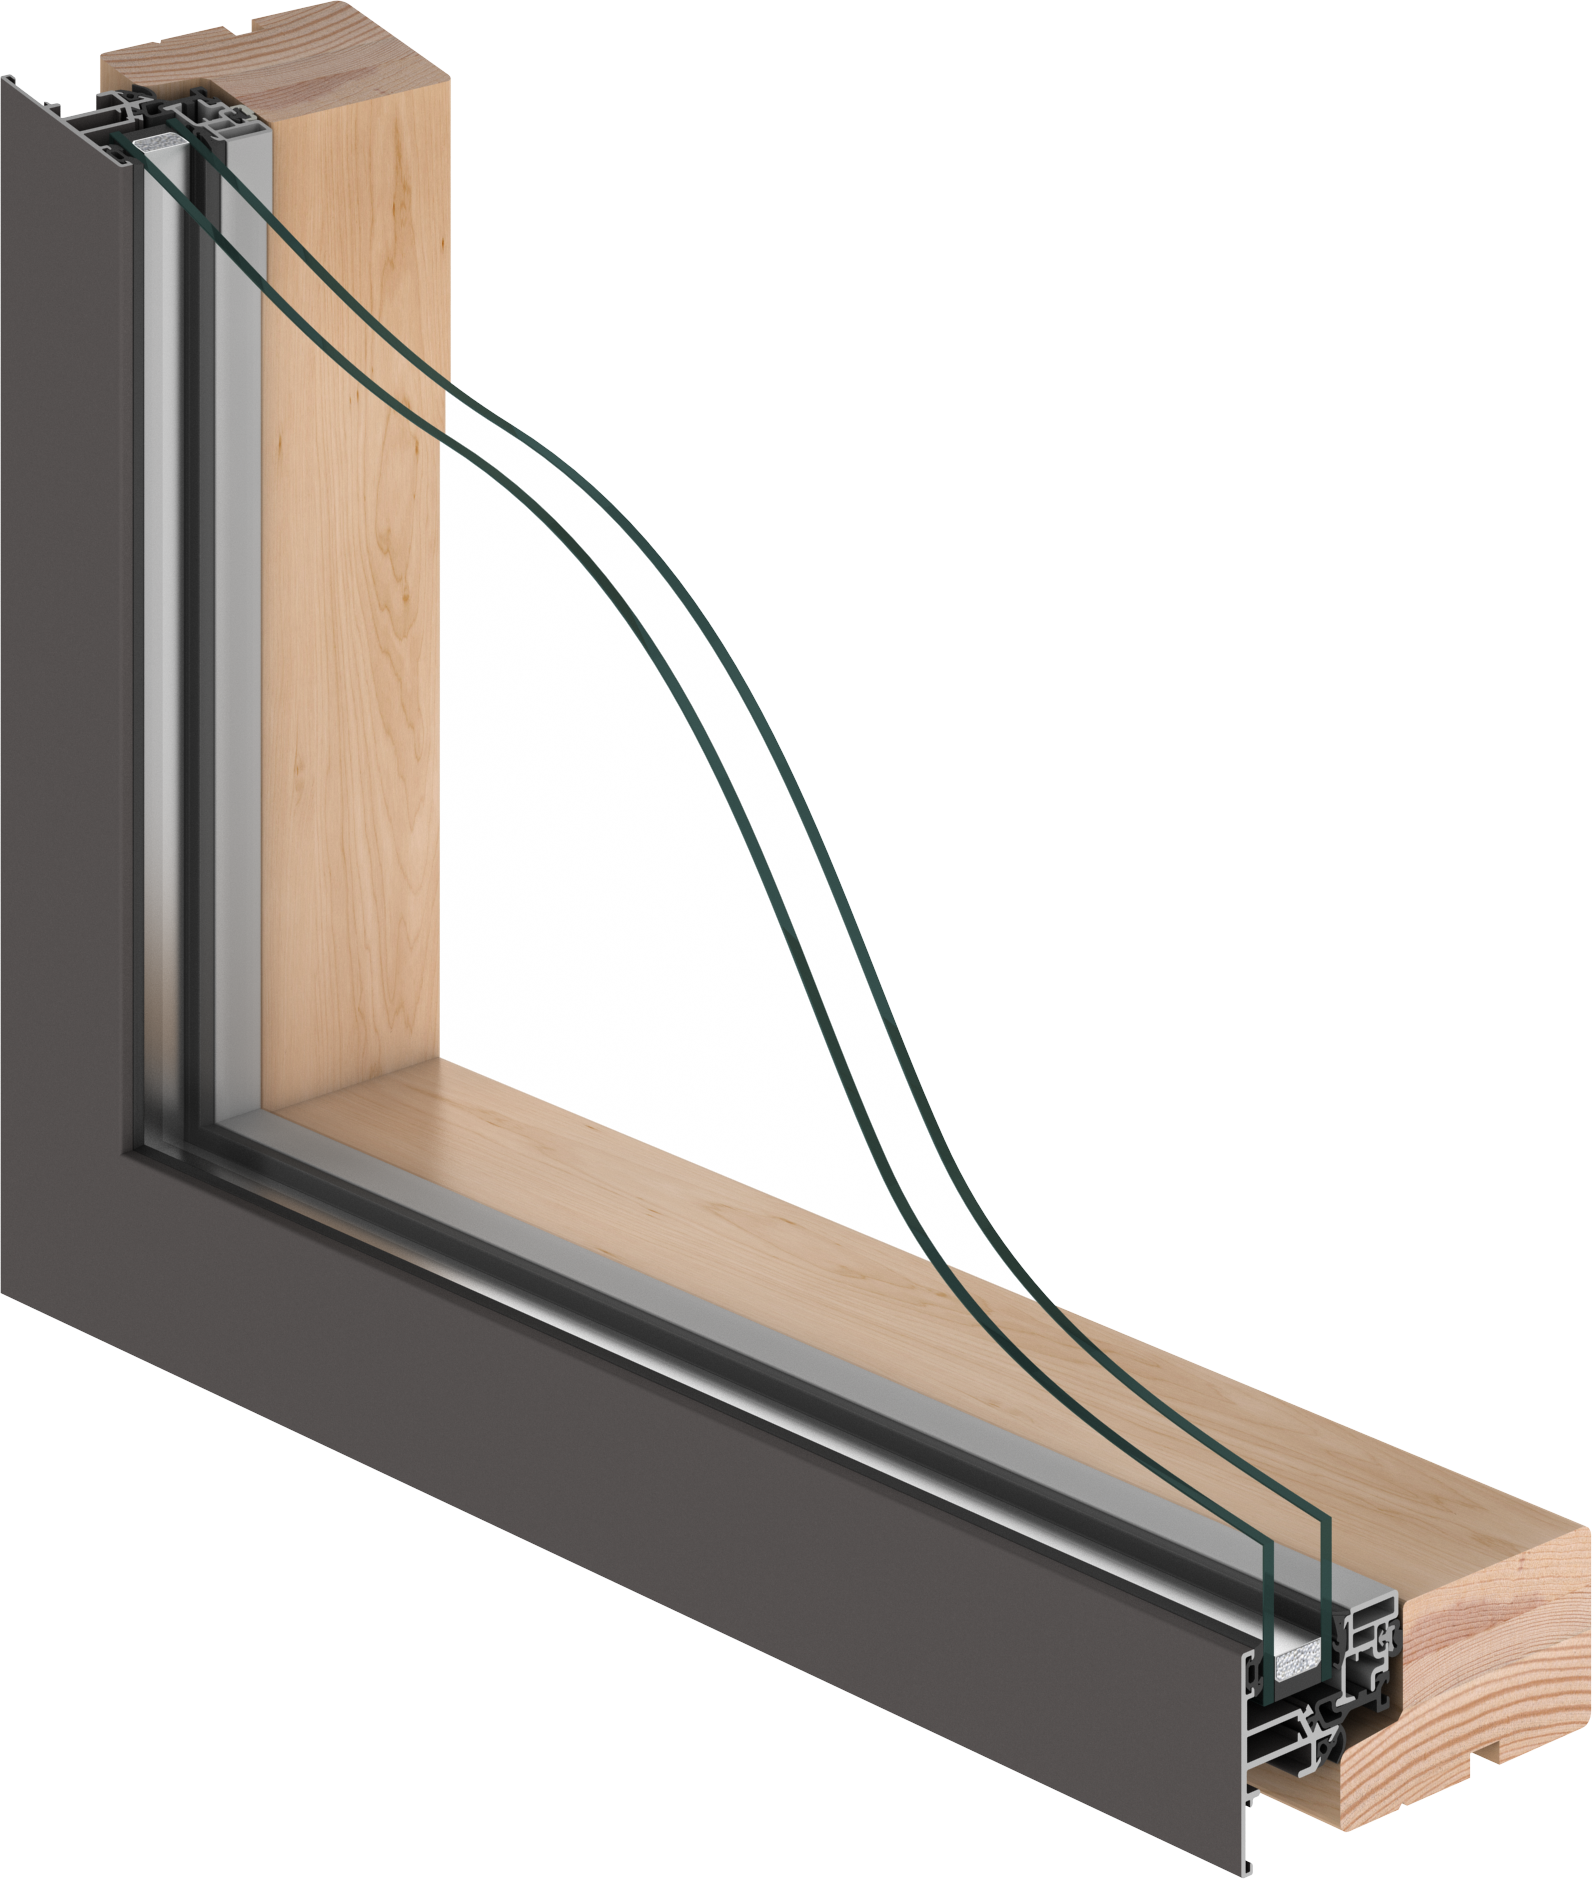 A stylish and sophisticated window with double glazing